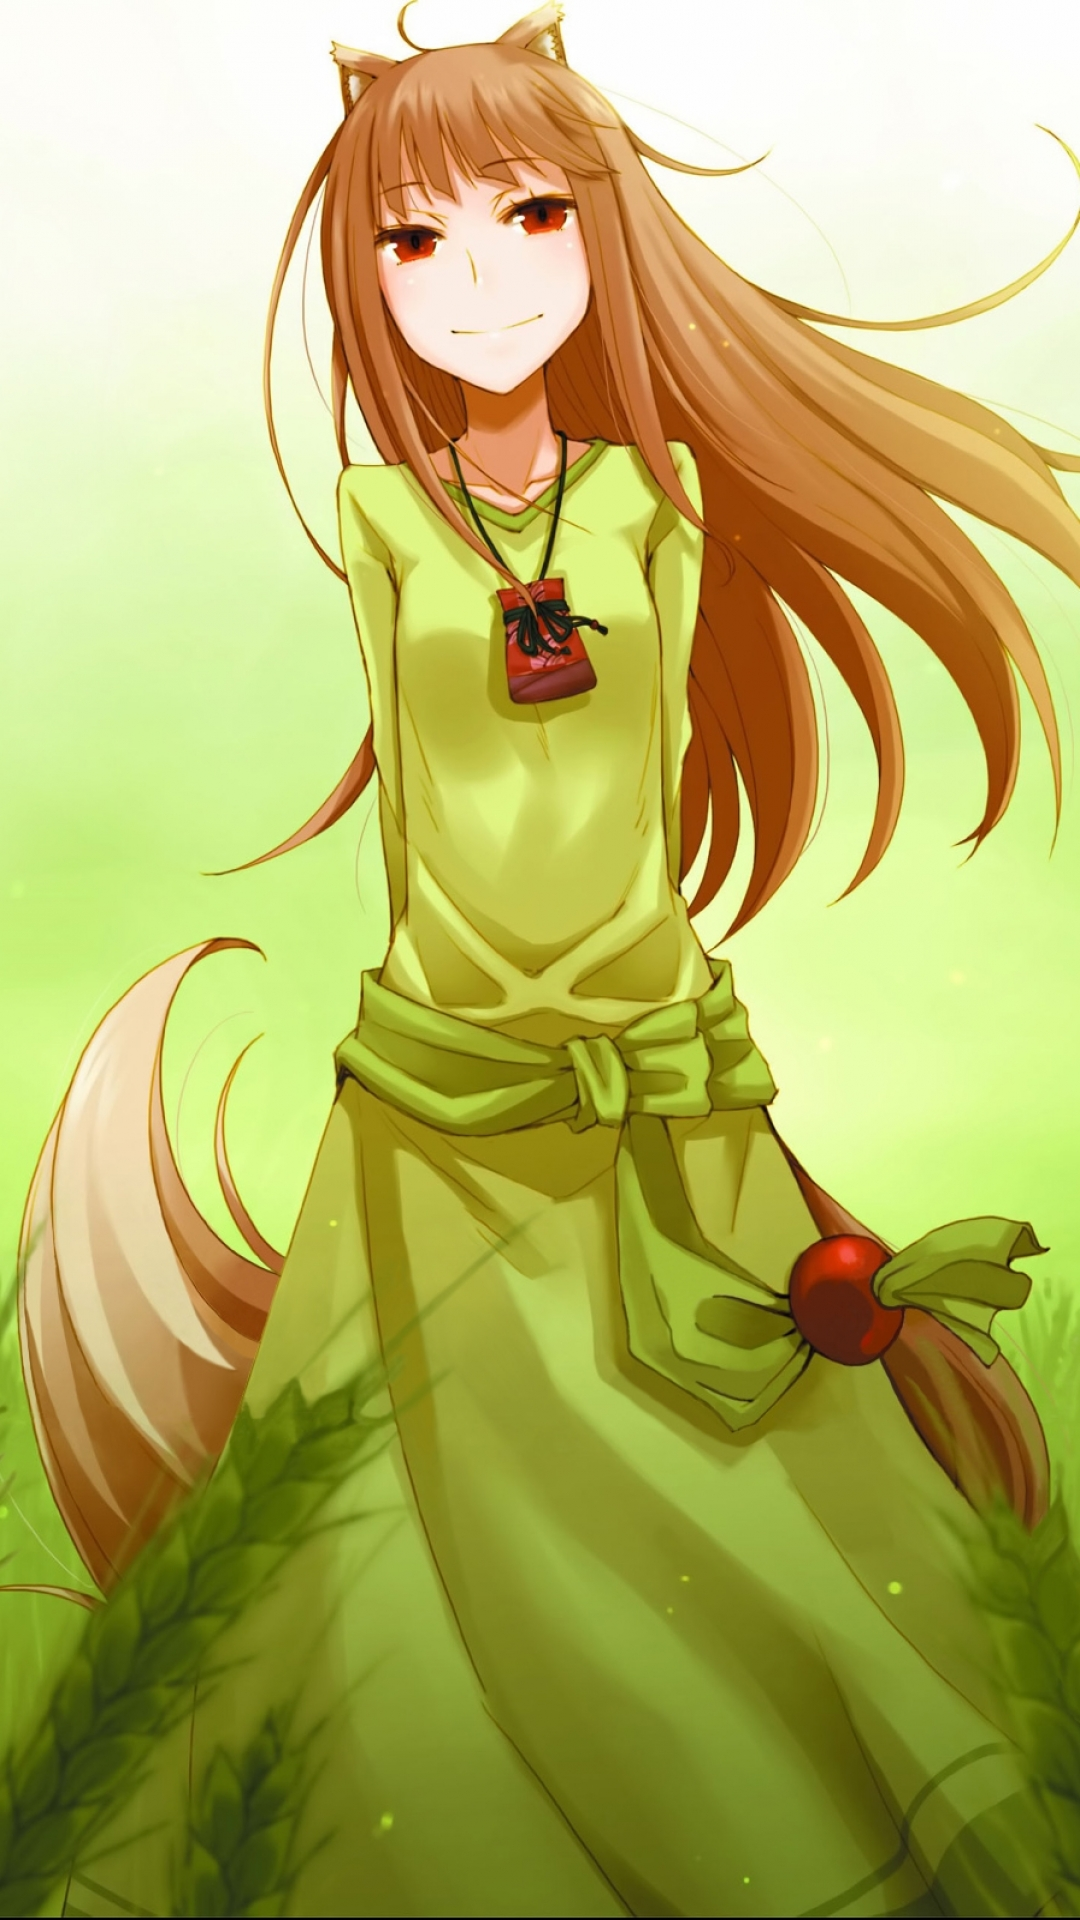 Anime Spice And Wolf 1080x1920 Mobile Wallpaper